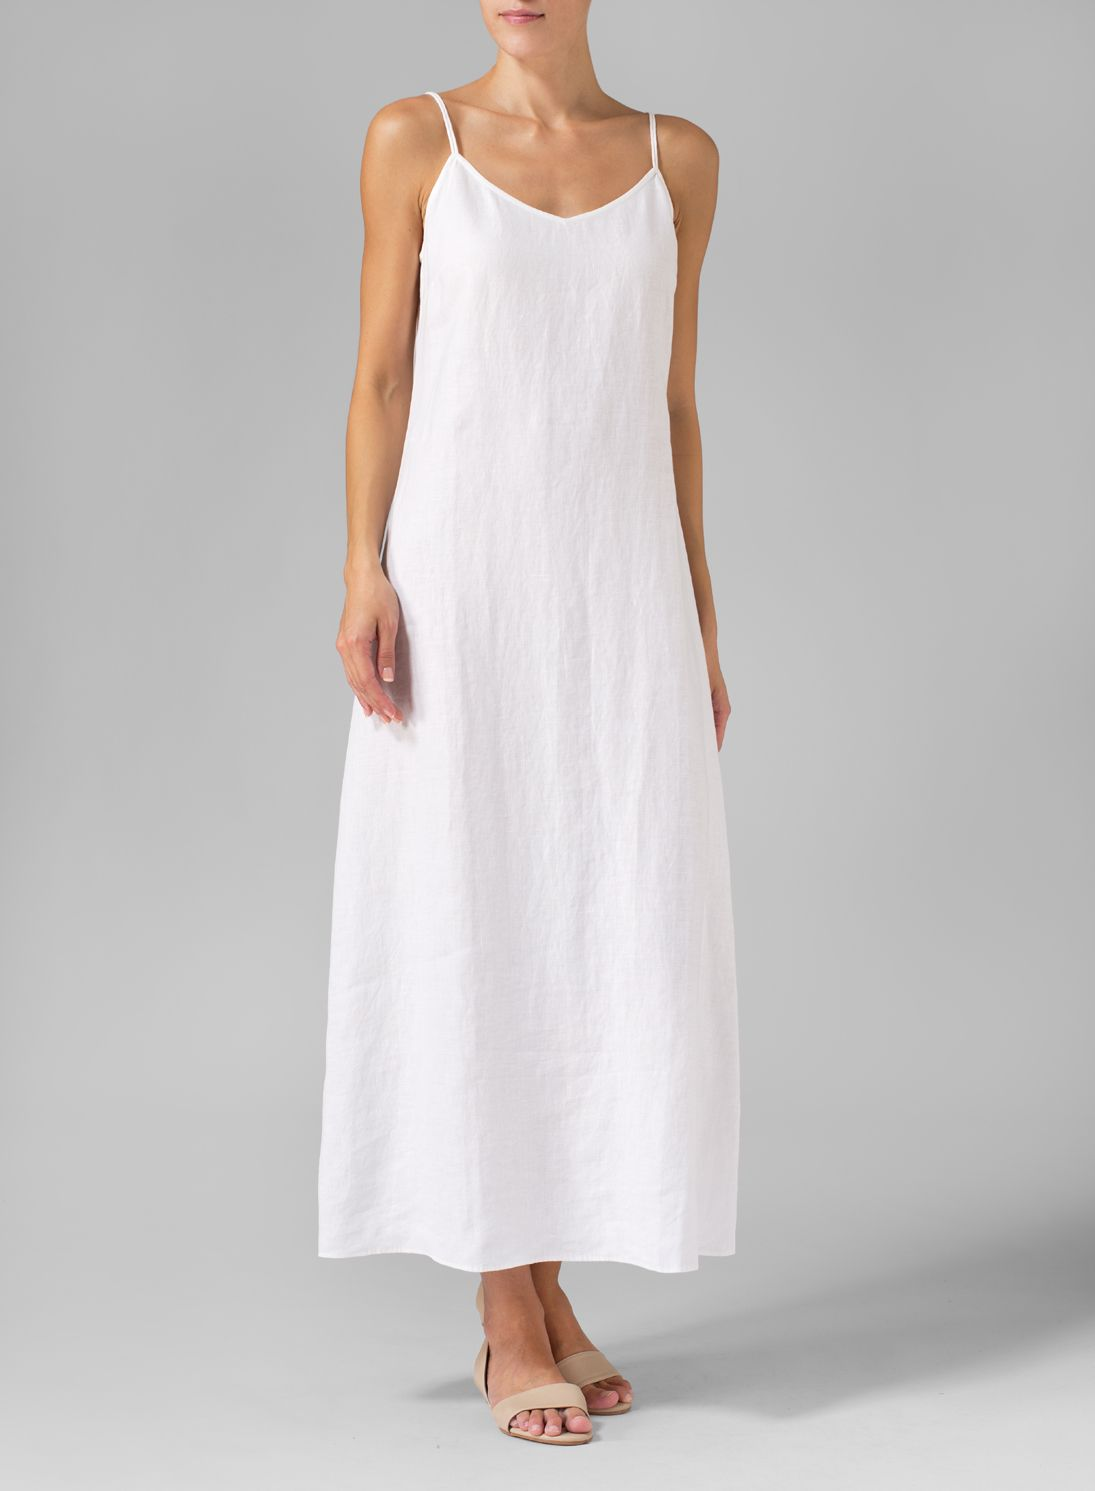 Long dresses for summer wedding  MISSY Collection  Linen HighLow Extra Long Tunic With Spaghetti